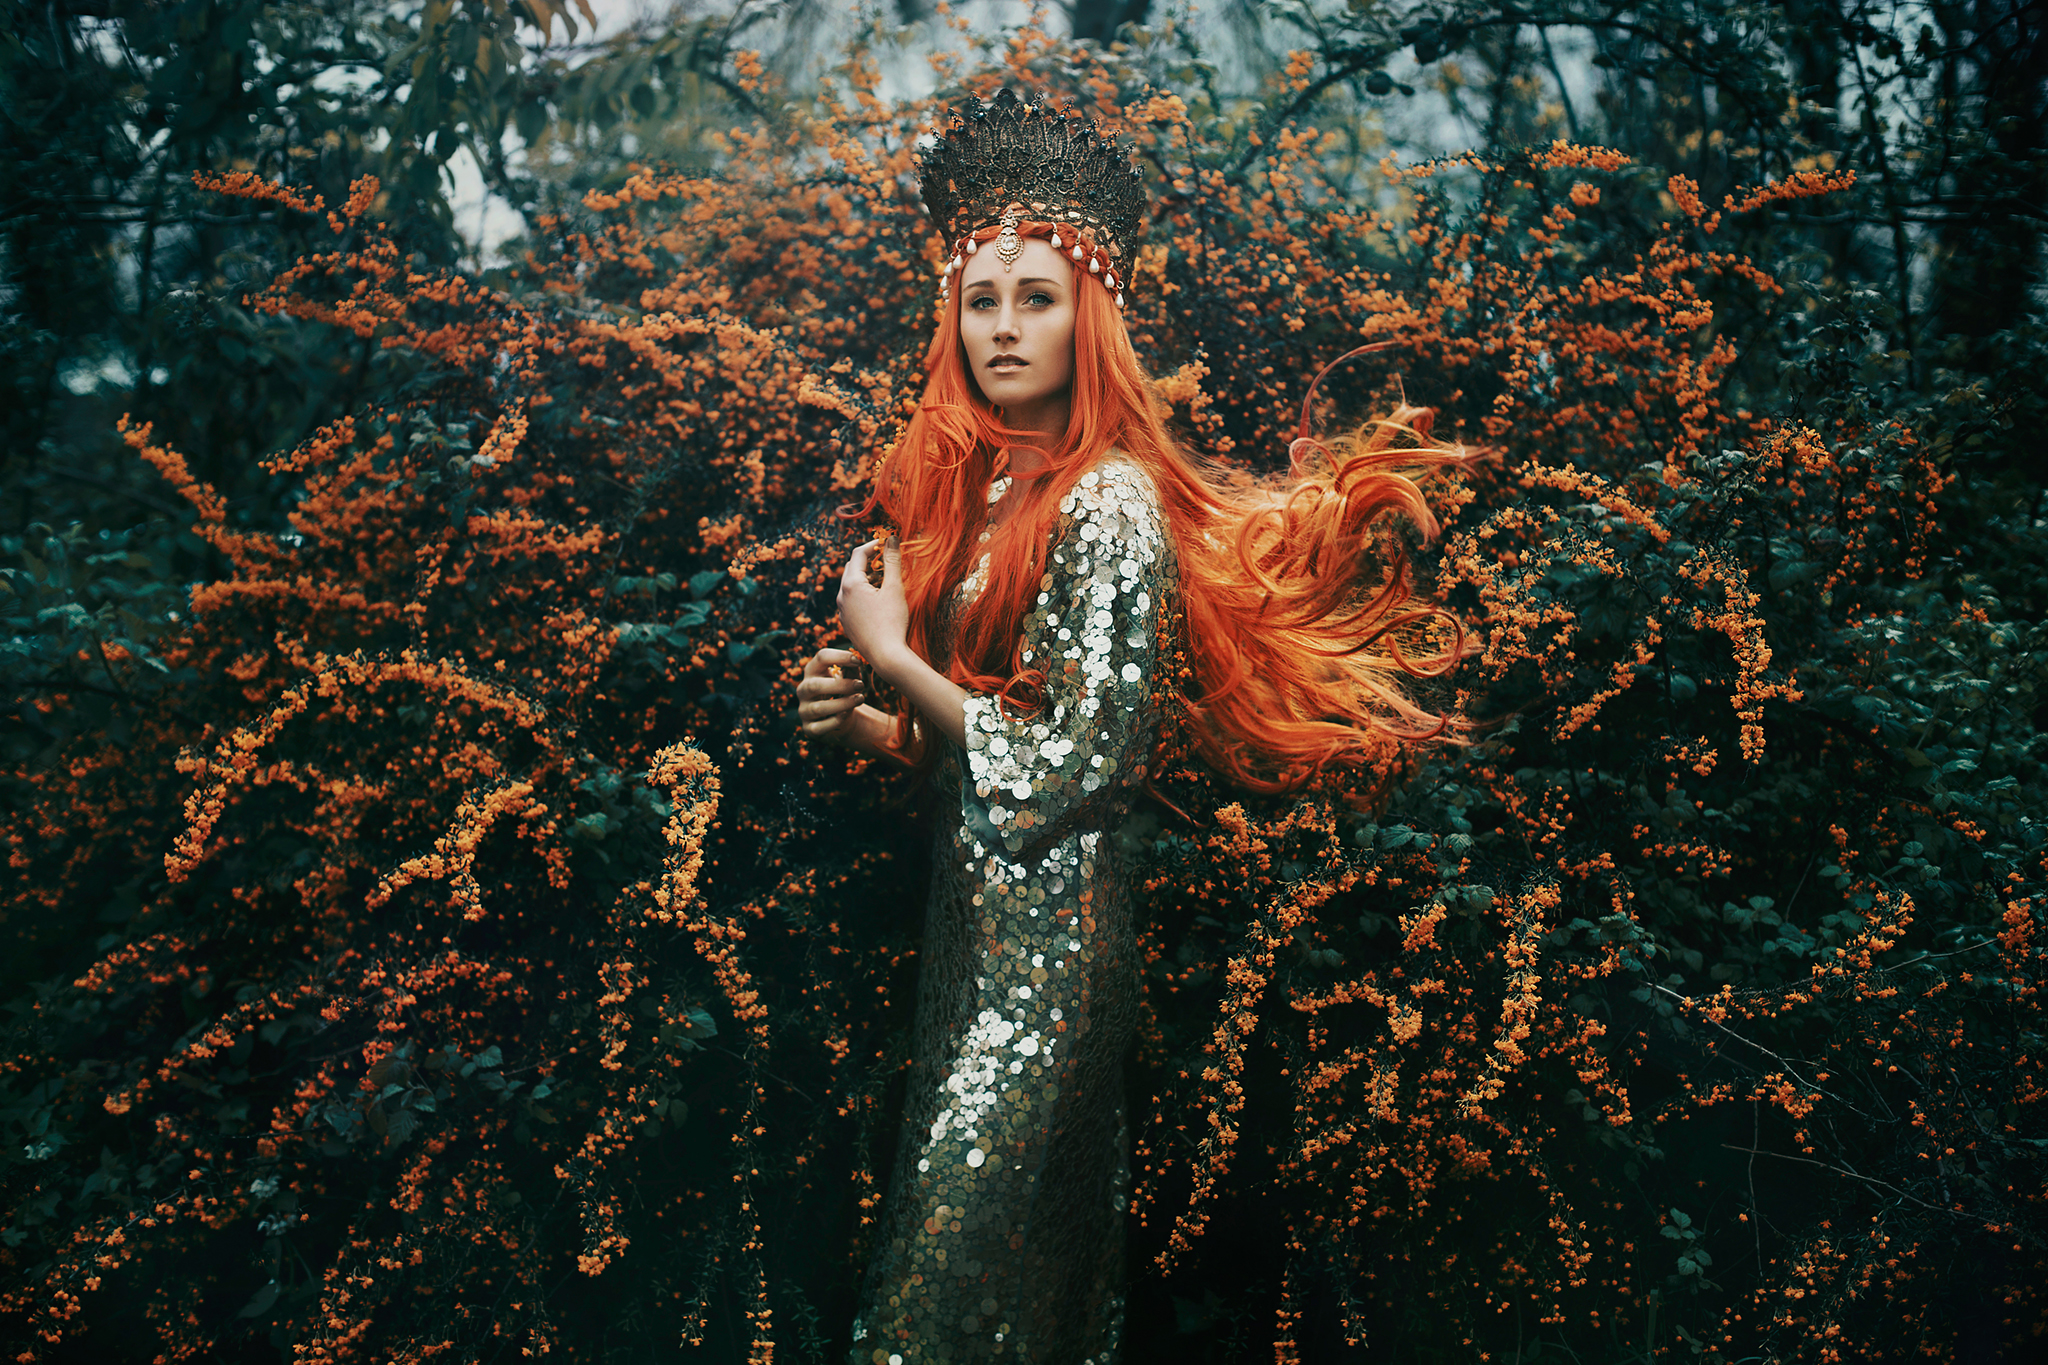 The Tempest - Bella Kotak.  Limited edition 70 x 50cm print - 1 of 25. £190 - print only. To order contact:  info@elementstudios.co.uk .